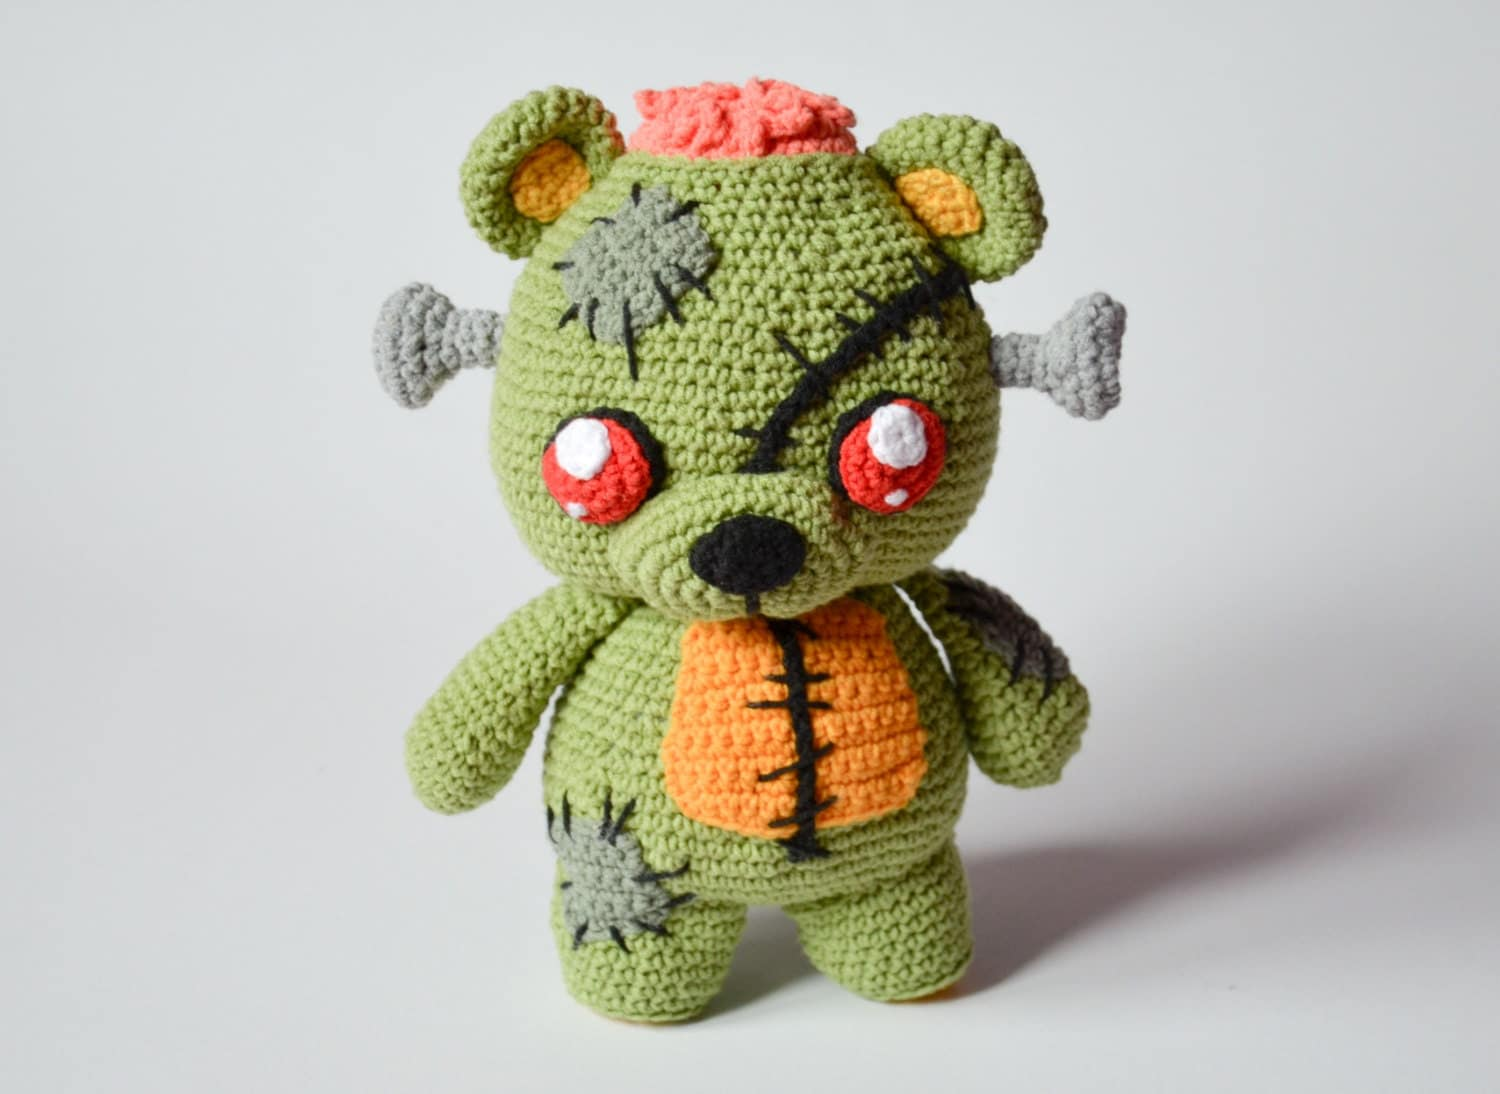 Crochet pattern frankie the zombie teddy bear by krawka zoom bankloansurffo Choice Image